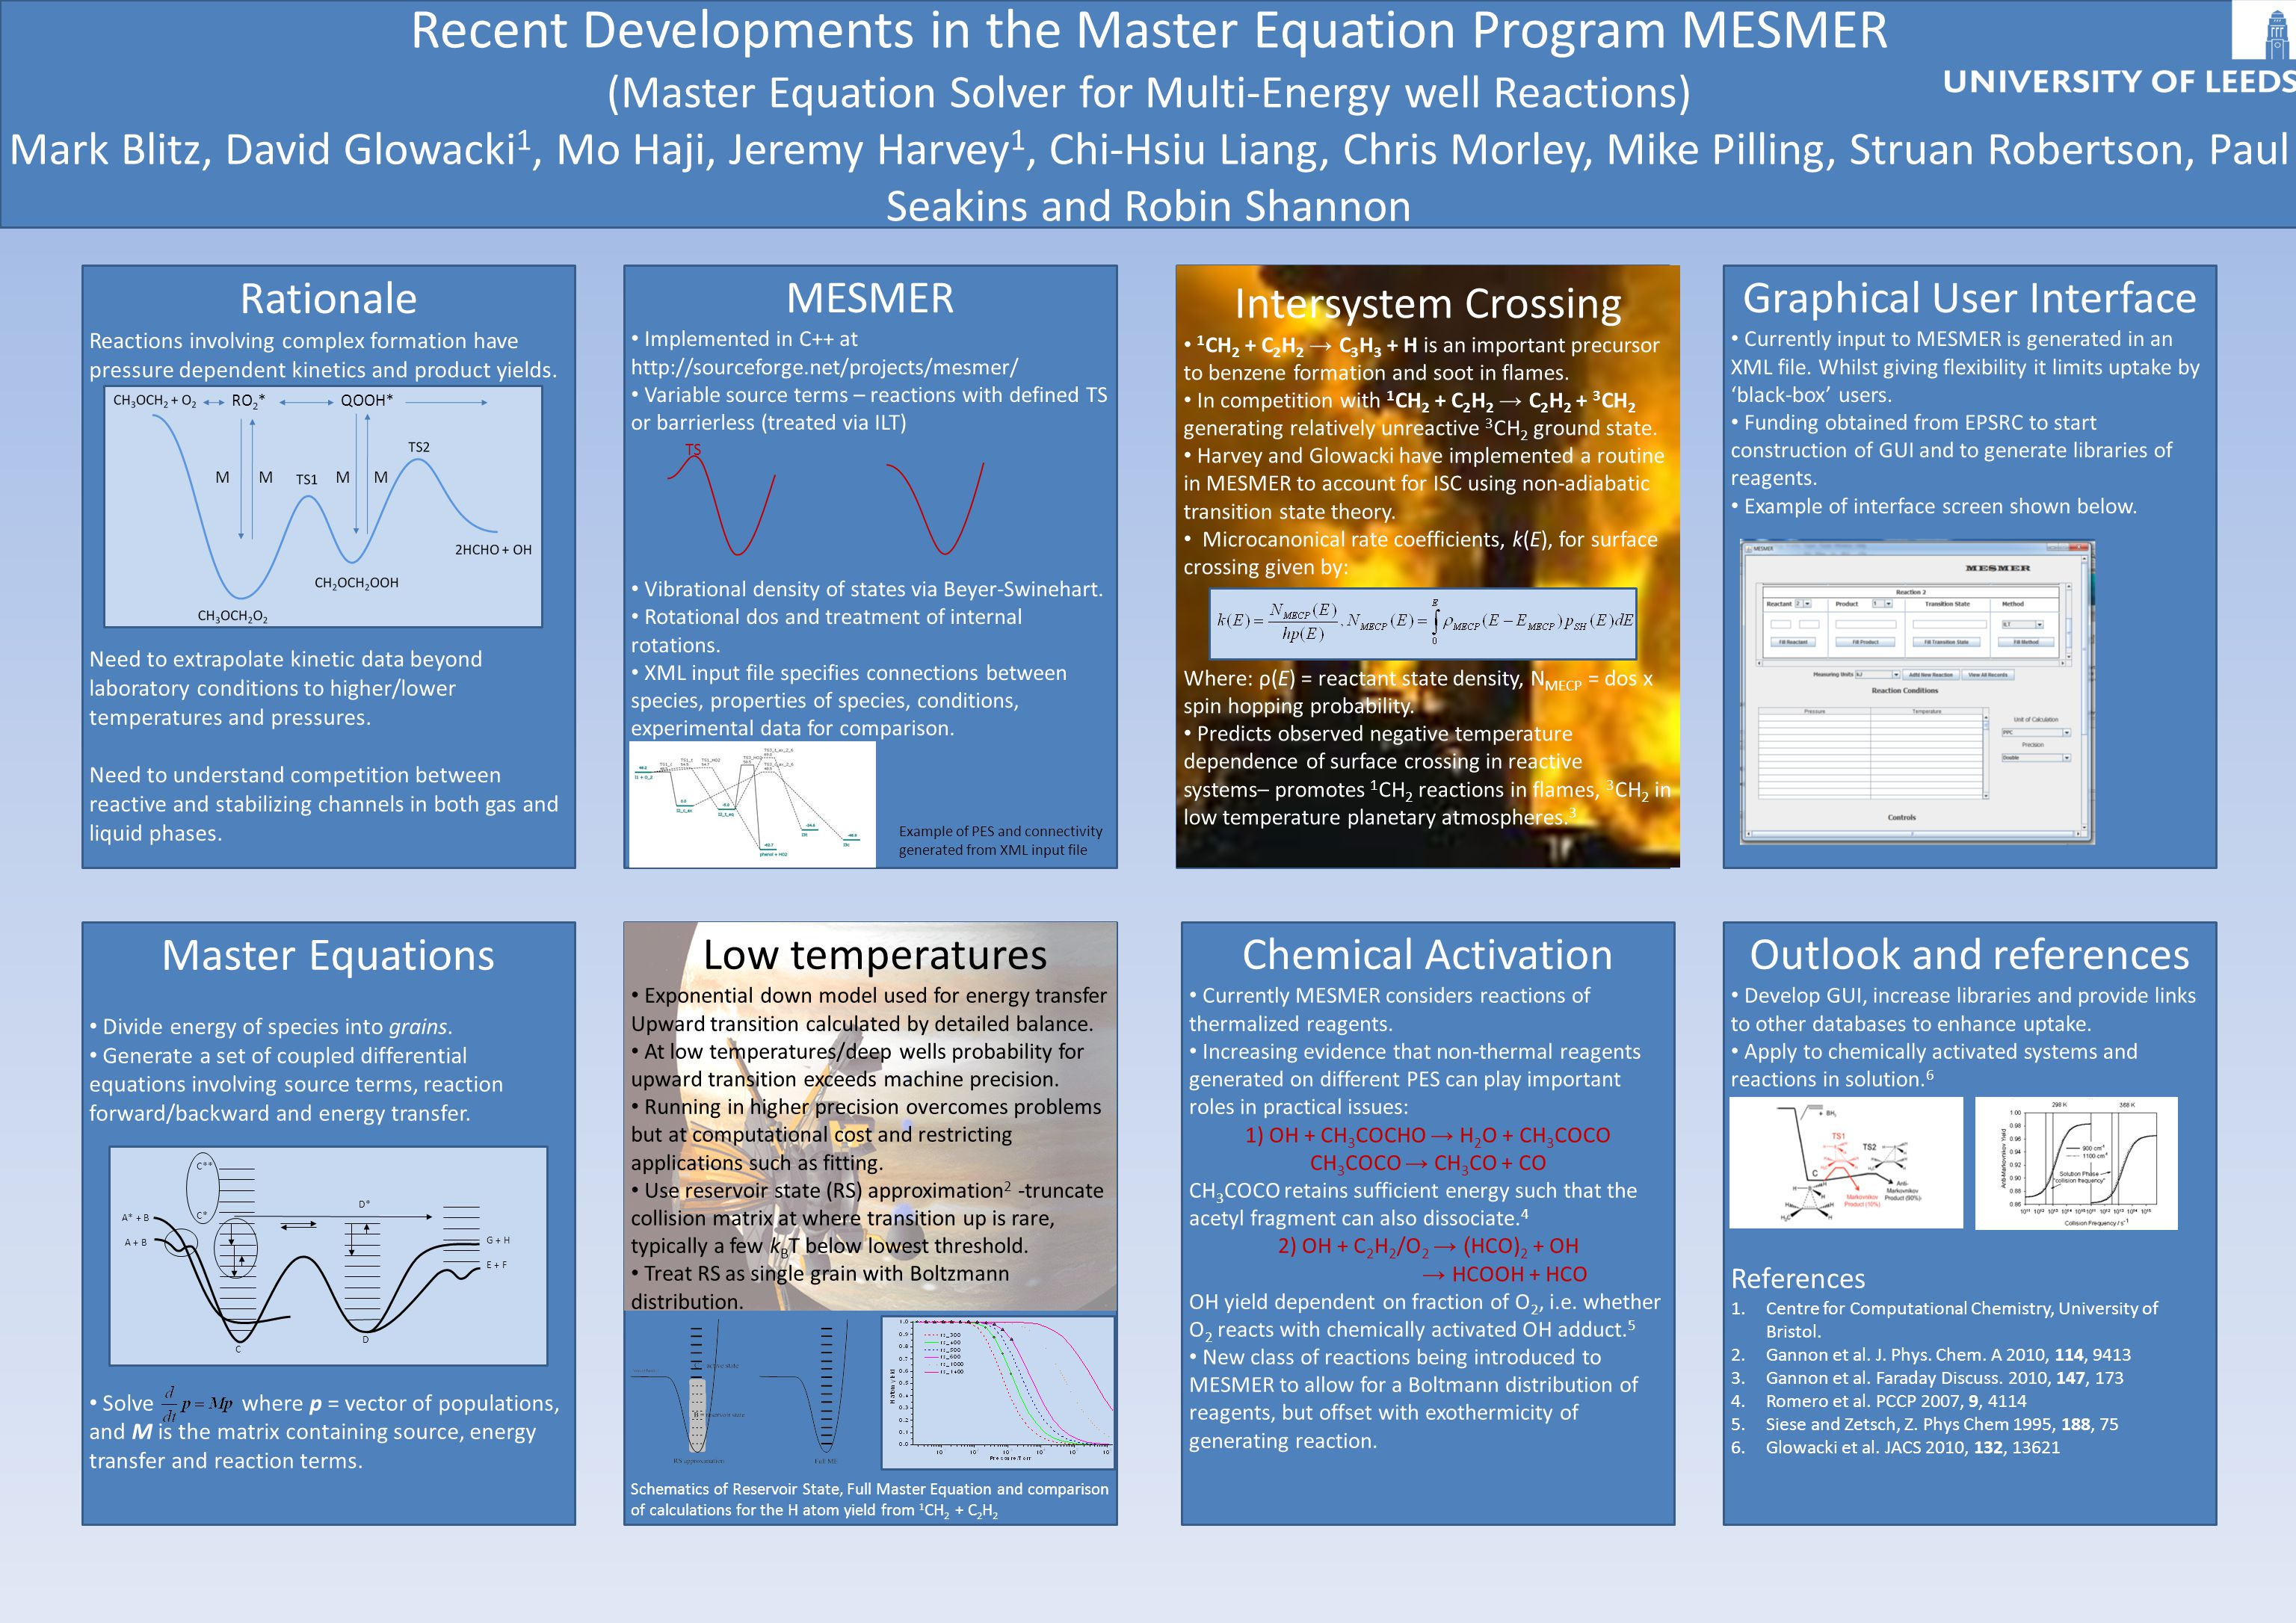 Recent Developments in the Master Equation Program MESMER (Master Equation Solver for Multi-Energy well Reactions) Mark Blitz, David Glowacki 1, Mo Haji, Jeremy Harvey 1, Chi-Hsiu Liang, Chris Morley, Mike Pilling, Struan Robertson, Paul Seakins and Robin Shannon Rationale Reactions involving complex formation have pressure dependent kinetics and product yields.